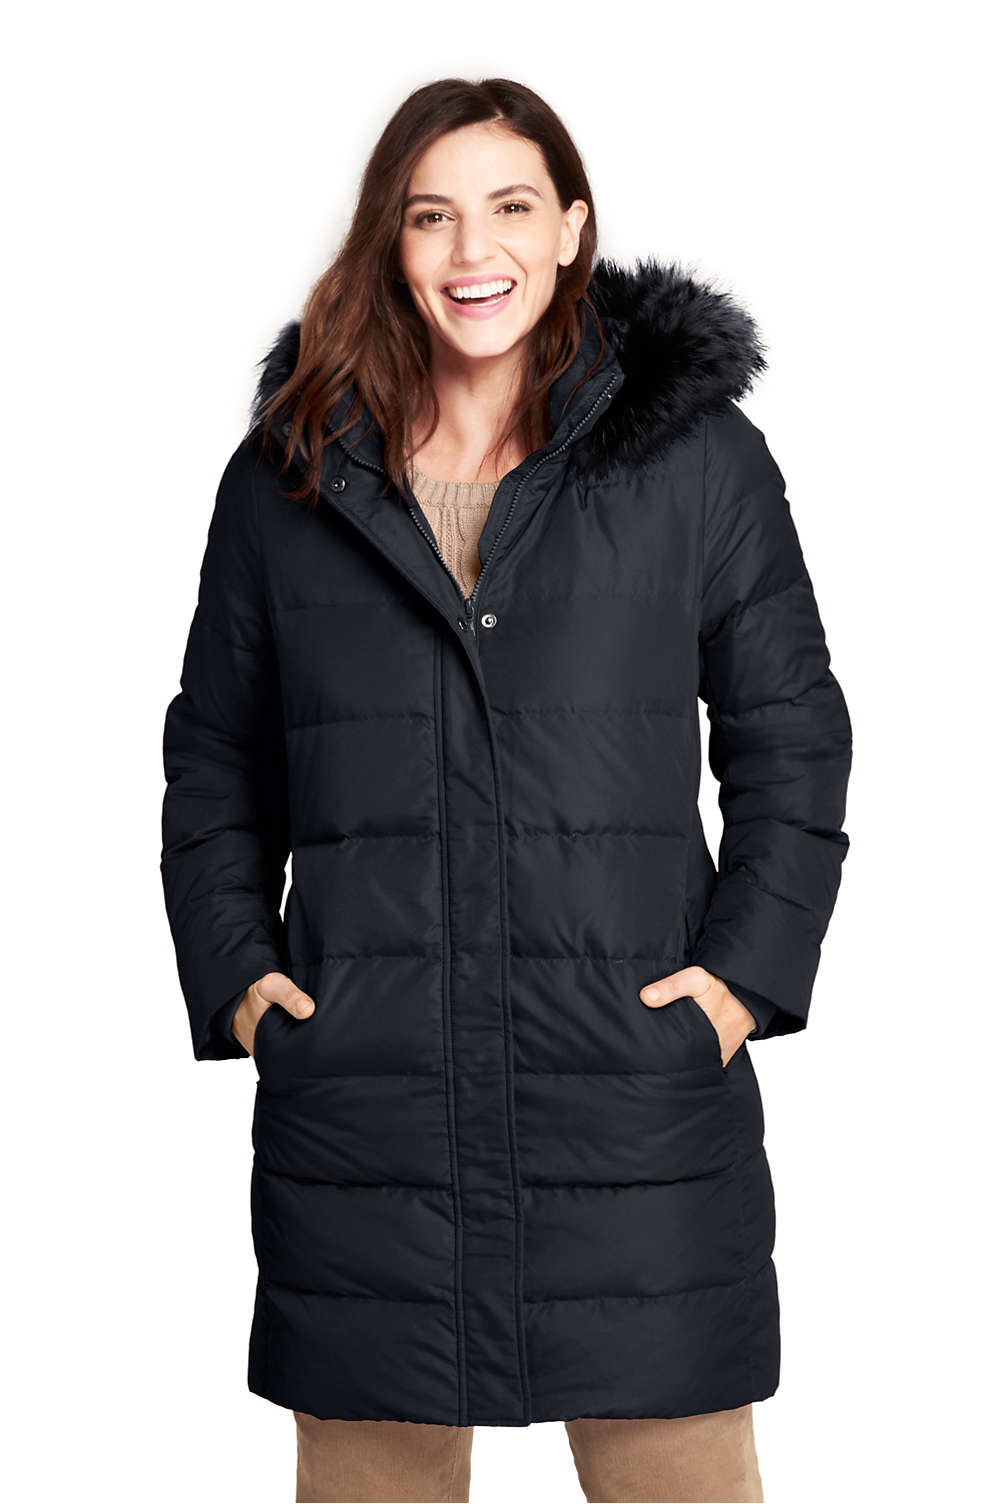 45a25bcf76 Women s Plus Size Winter Long Down Coat with Faux Fur Hood from Lands  End